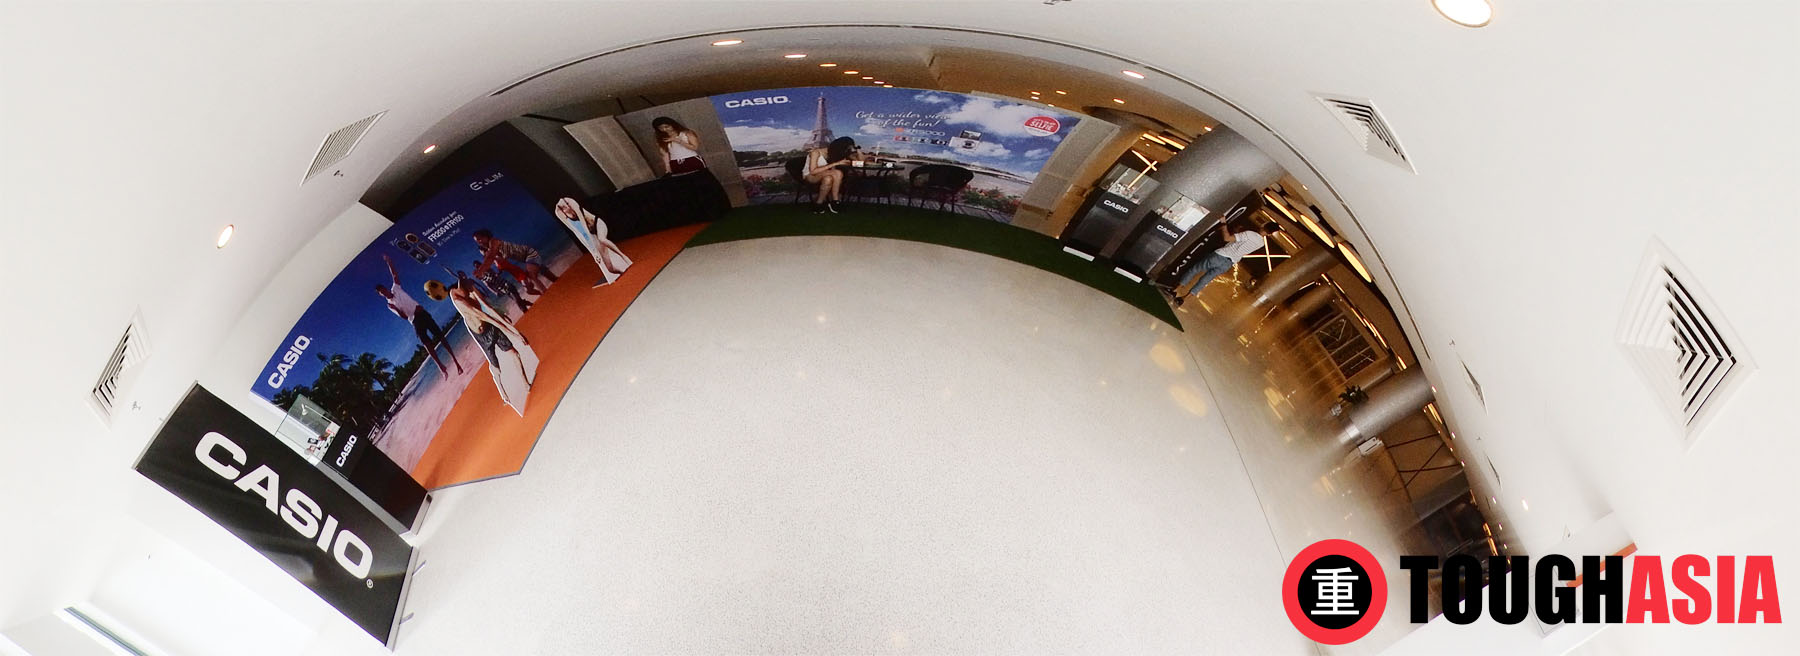 Taking a Panorama on the new Casio Exilim FR200.